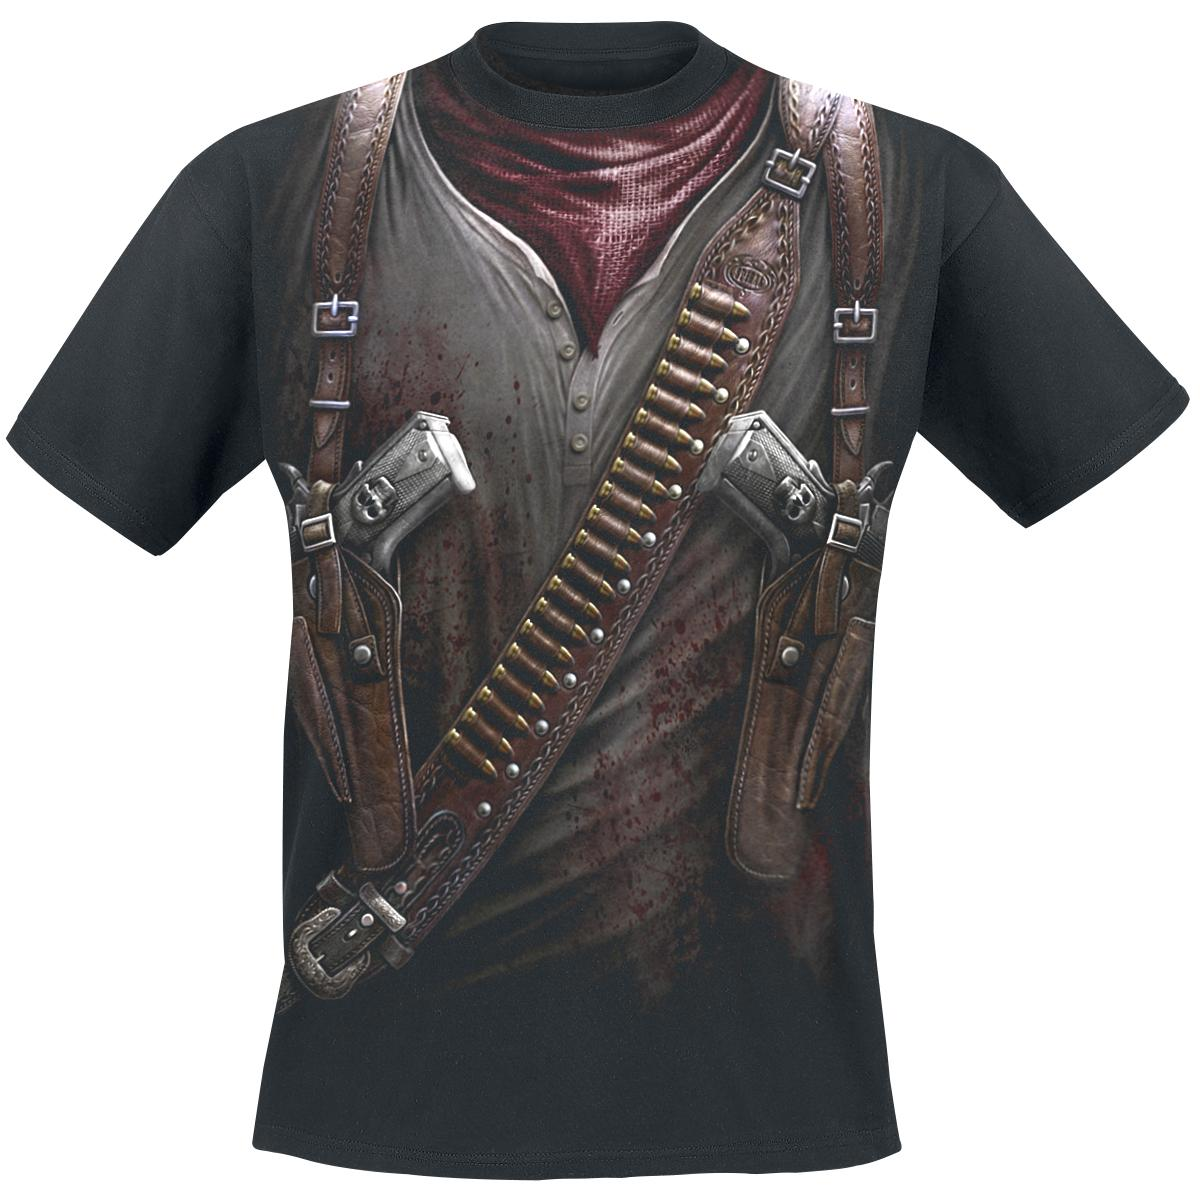 Holster Wrap T-shirt Design front